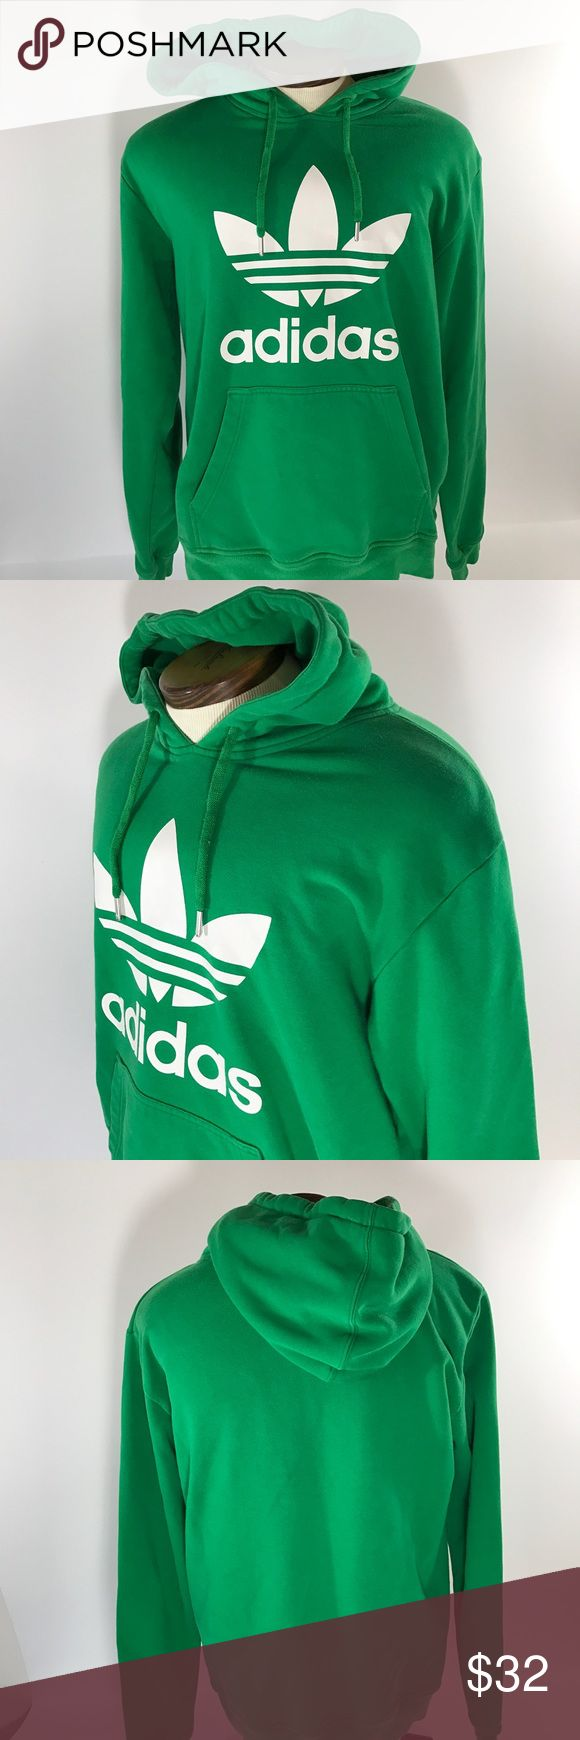 Men Adidas Firebird Green Hoodie SweatShirt Size L Condition no rips no stains  Measurements  Chest measures armpit to armpit 23 inches  Length measured middle back a shirt from bottom collar to bottom 27 inches Adidas Shirts Sweatshirts & Hoodies